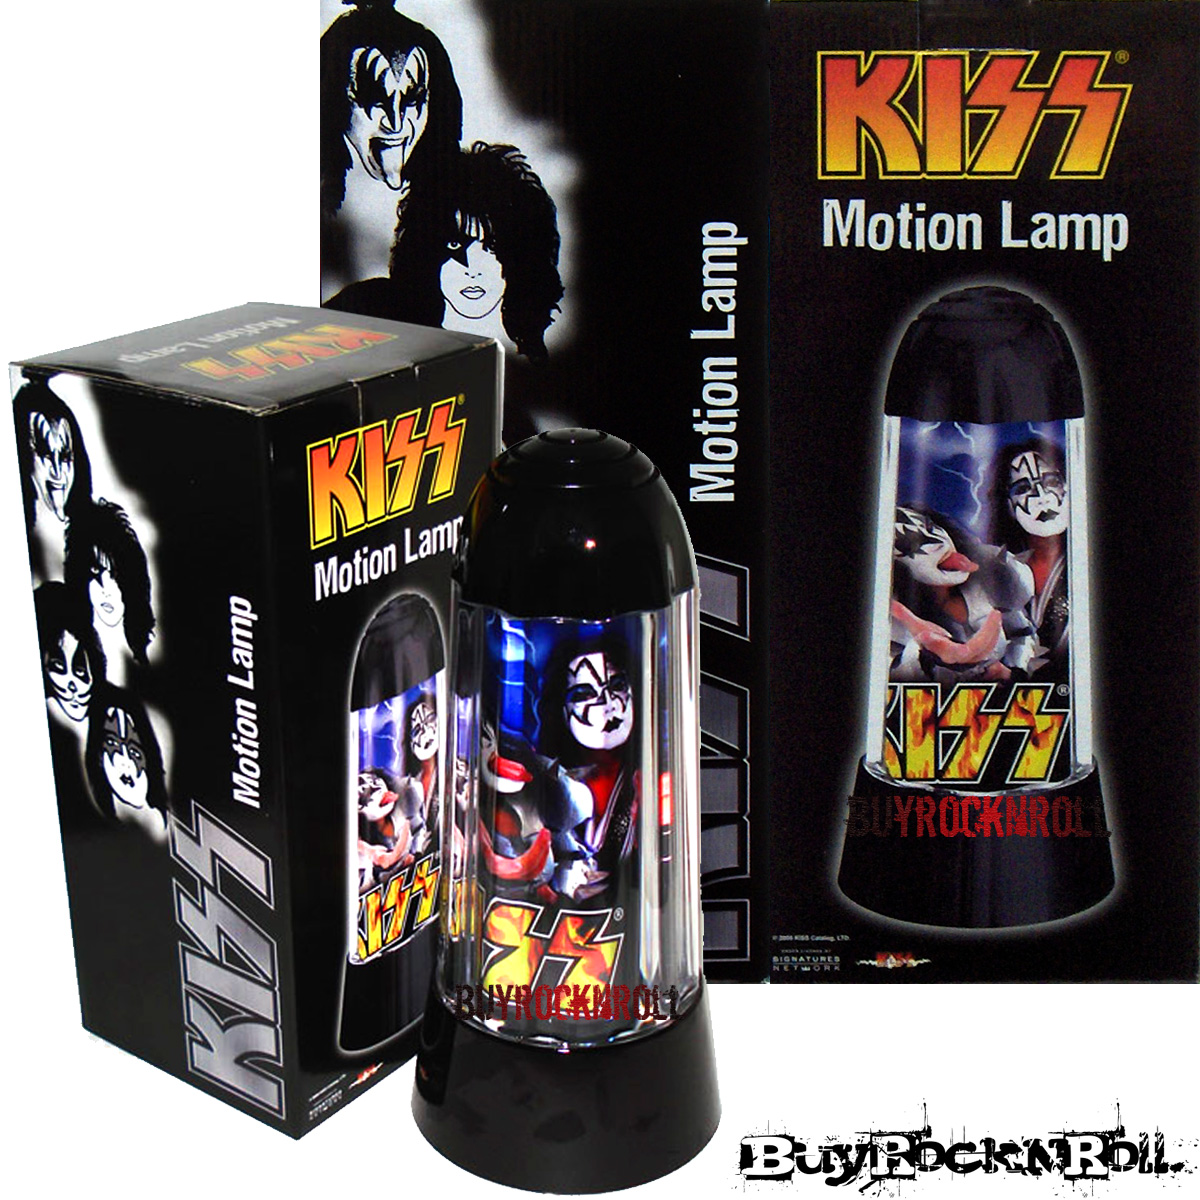 KISS-Collectors-Memorabilia-2006-Motion-Lamp-Demon-Starchild-Catman-Space-Ace